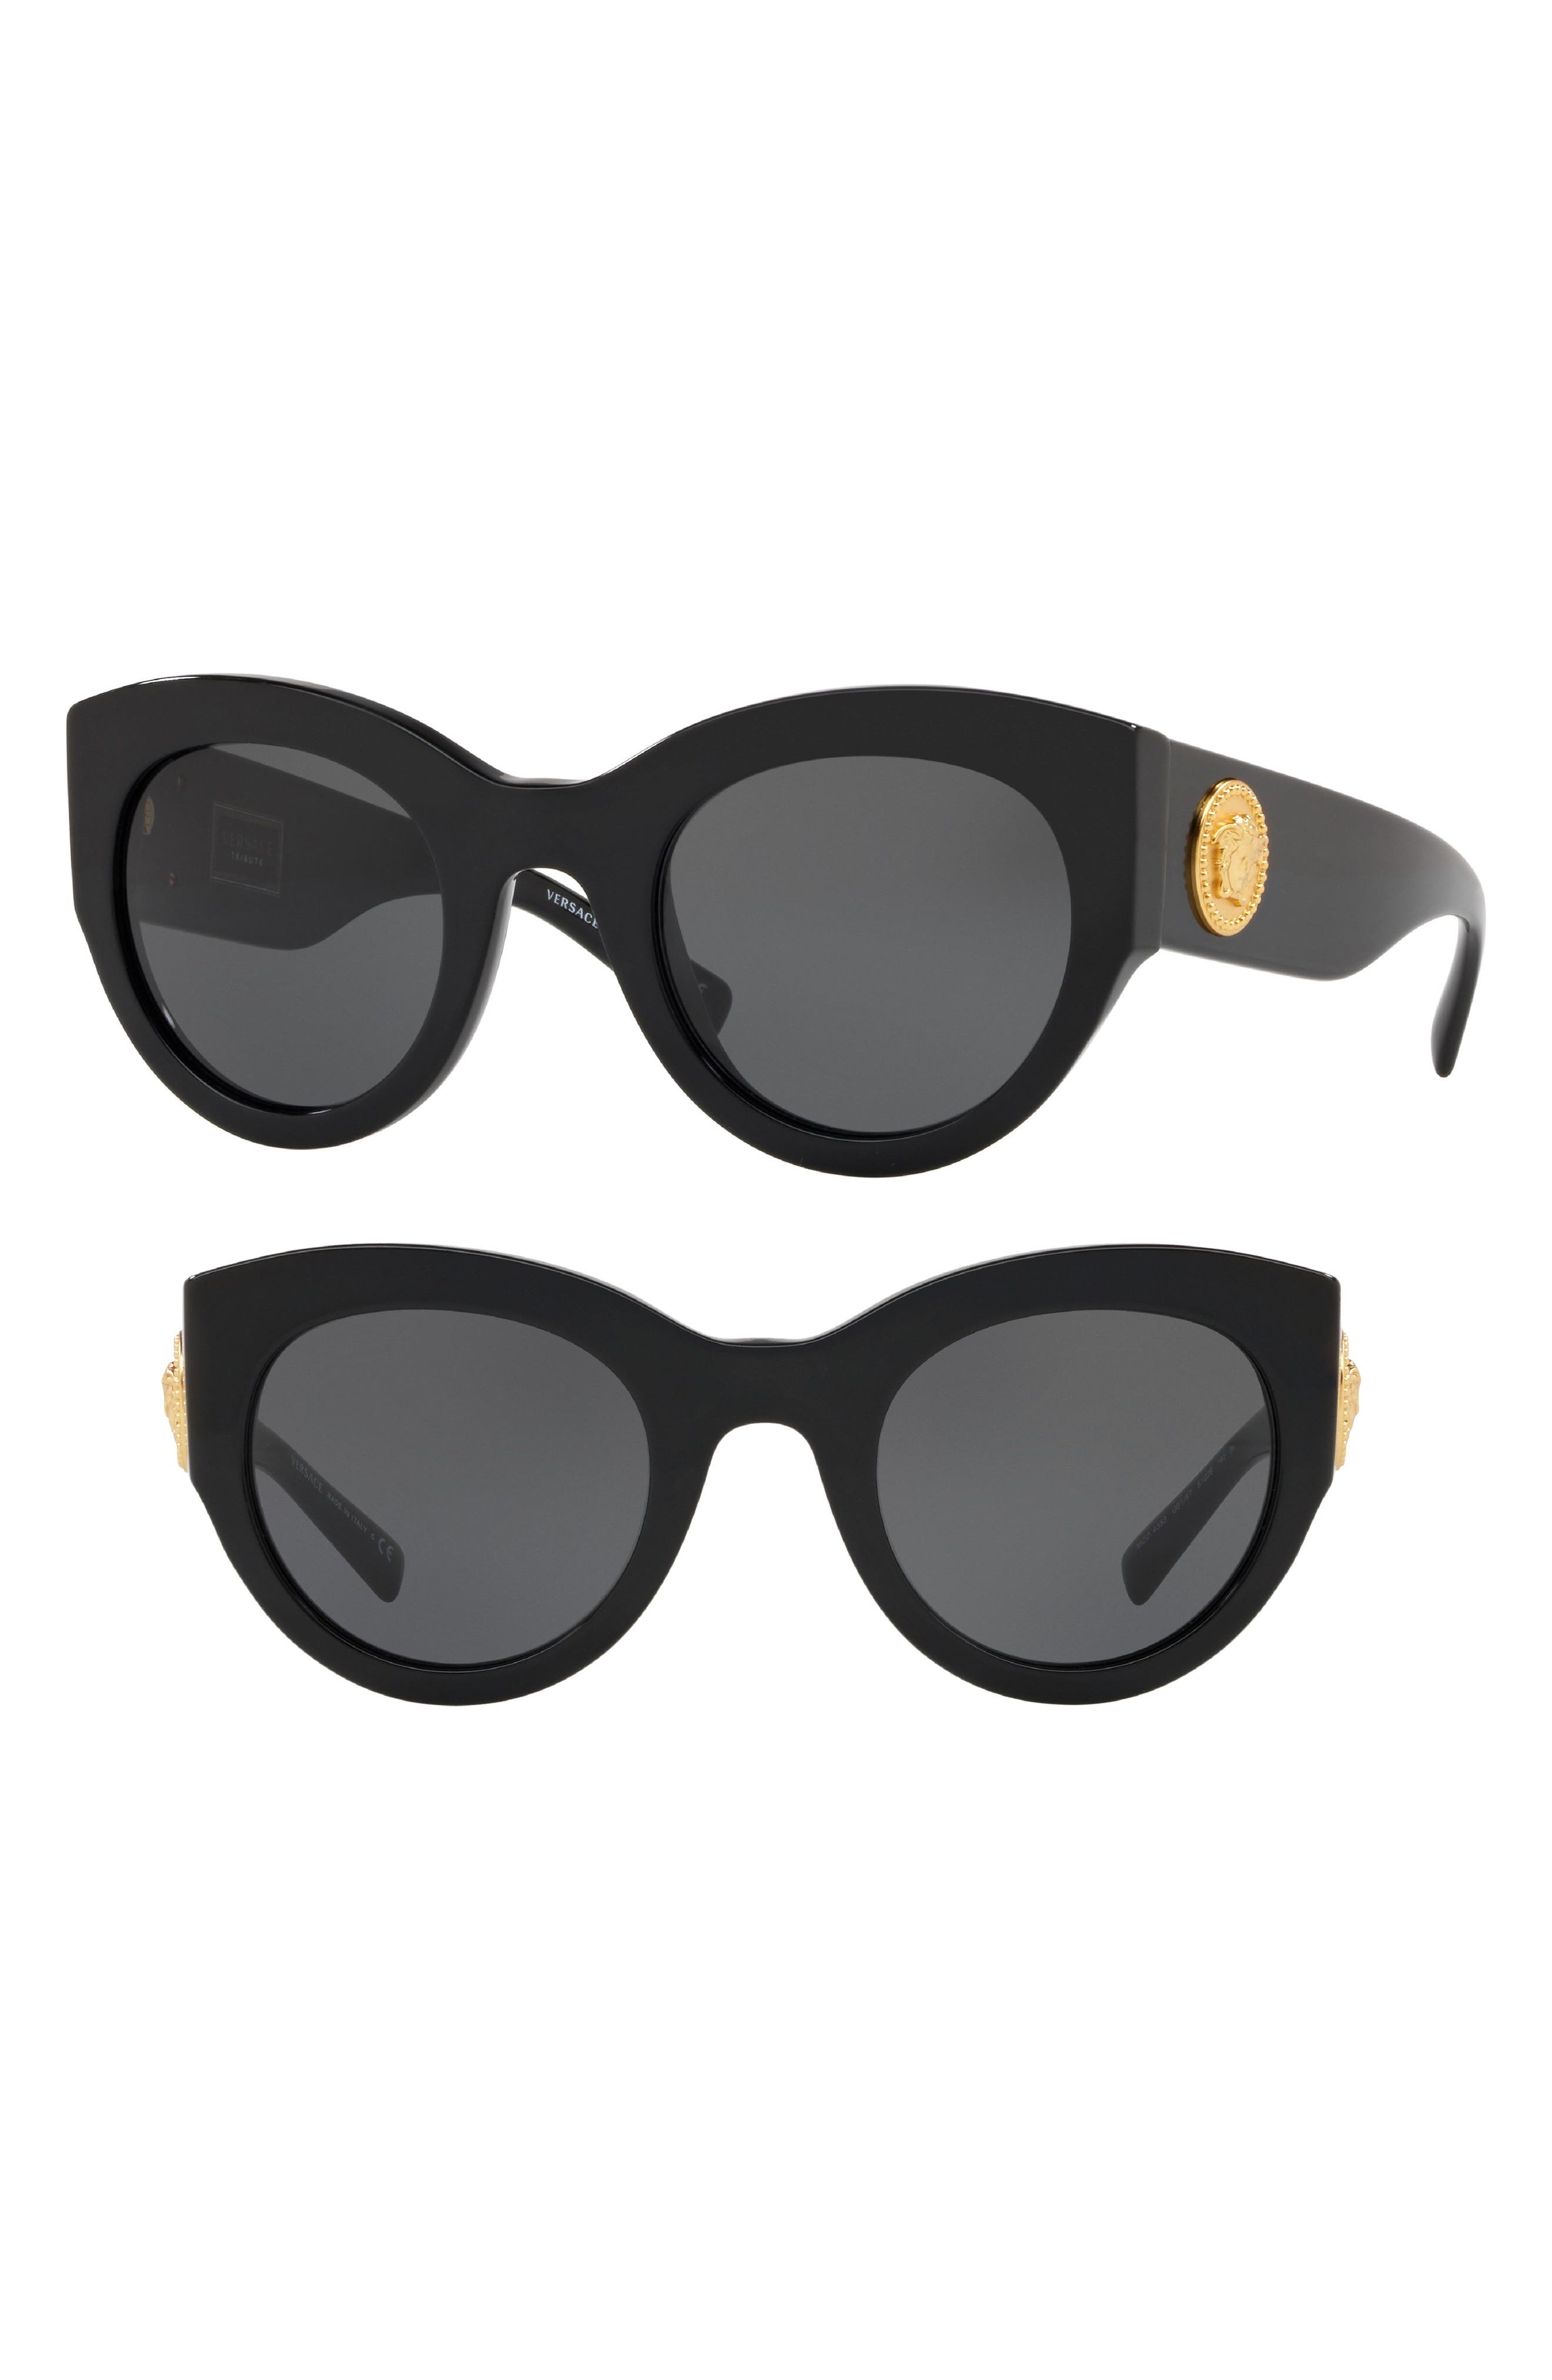 Tribute 51mm Cat Eye Sunglasses,                         Main,                         color, BLACK SOLID